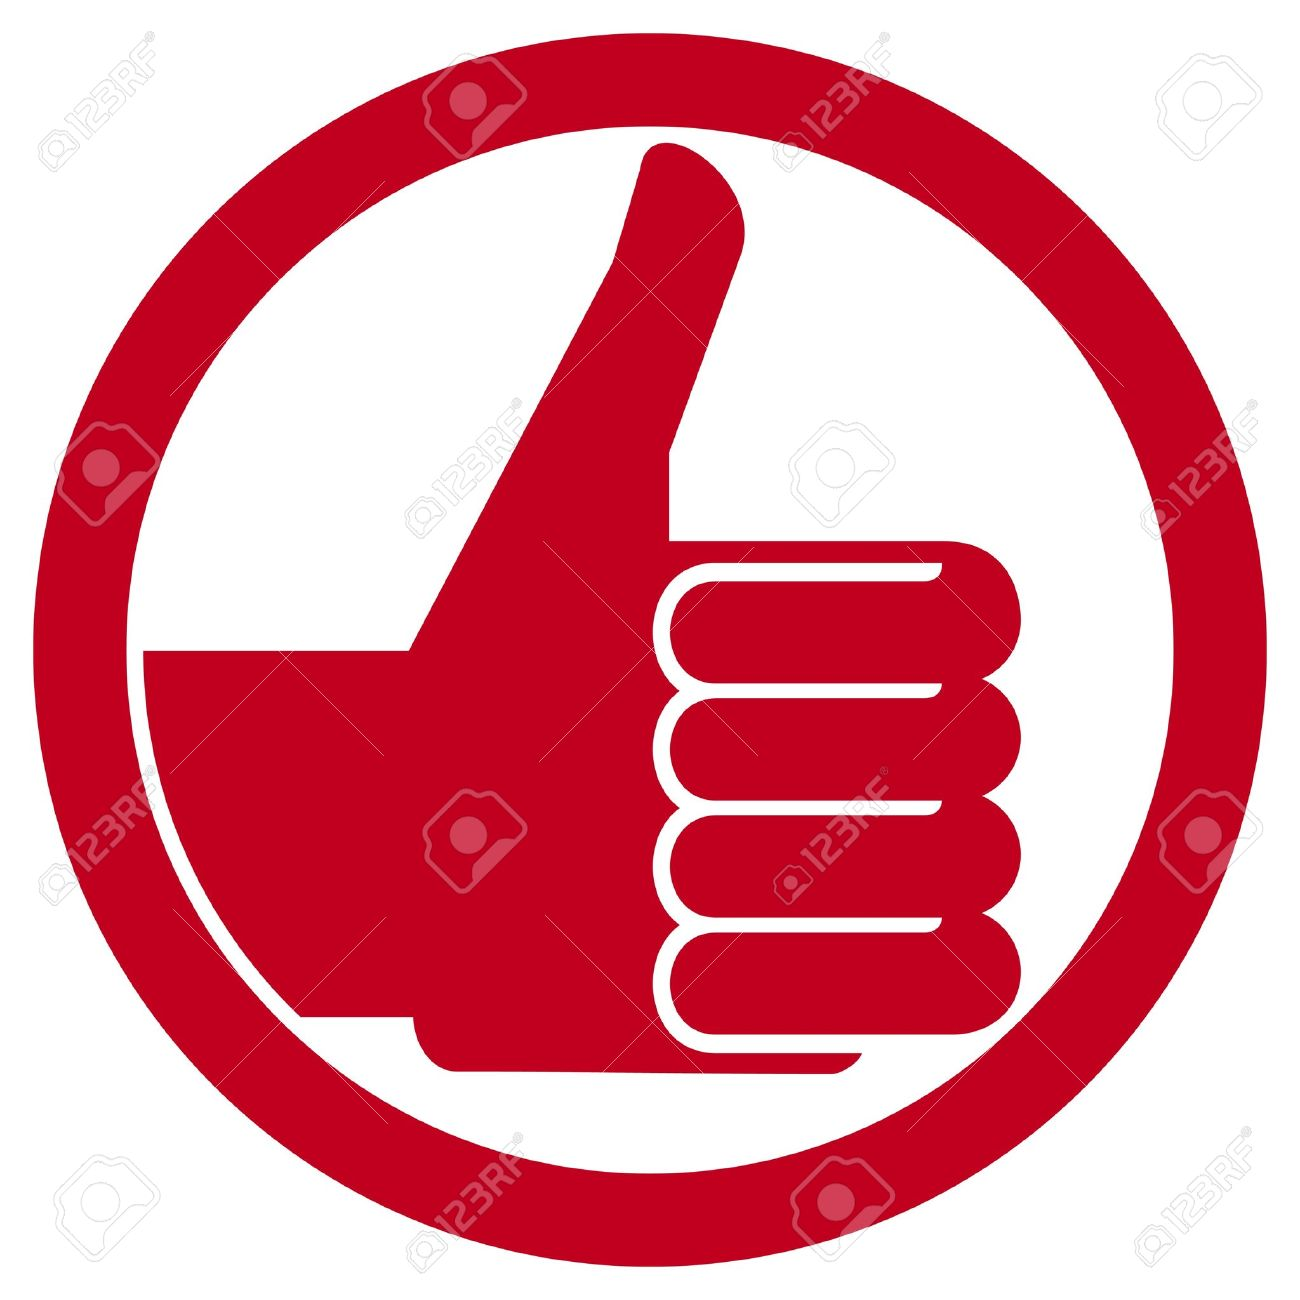 thumbs up symbol (vector hand showing thumbs up, human hand thumbs up, thumbs up badge, like icon, like symbol) Stock Vector - 16675310